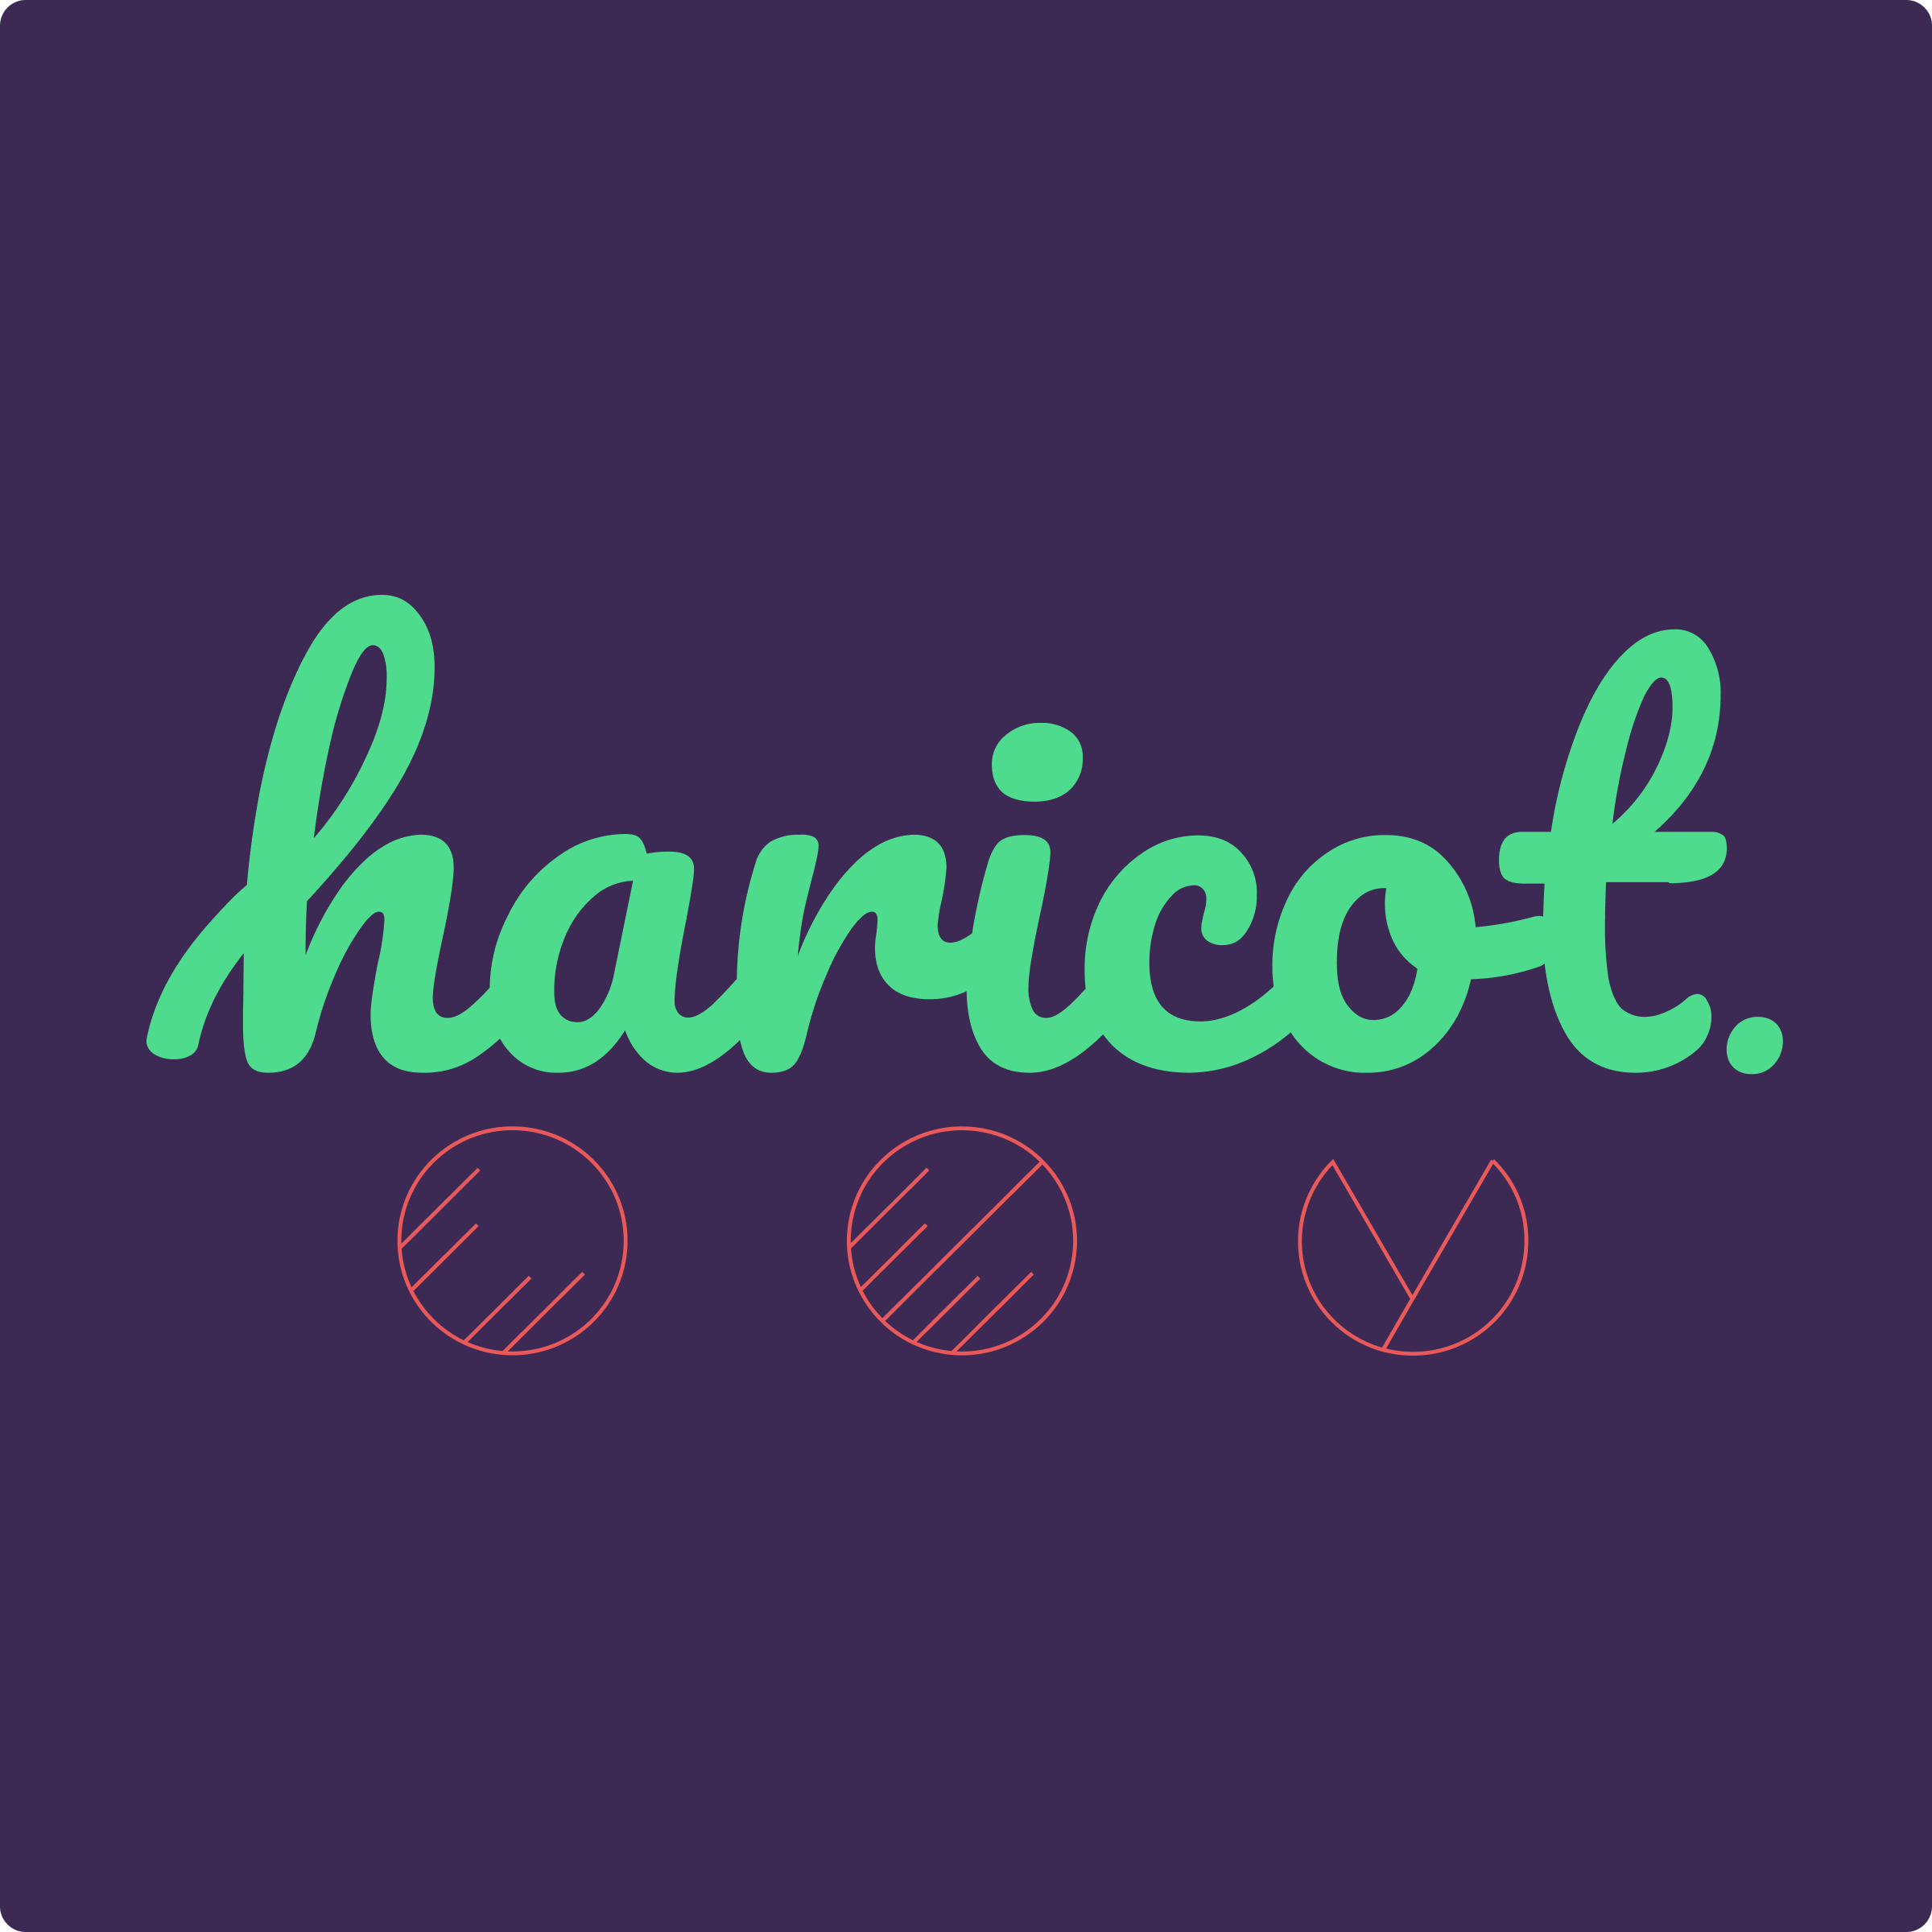 The Haricot combination mark, with sea green script and a pink line illustration of three dots, the last splitting open like a seed, on a purple background.